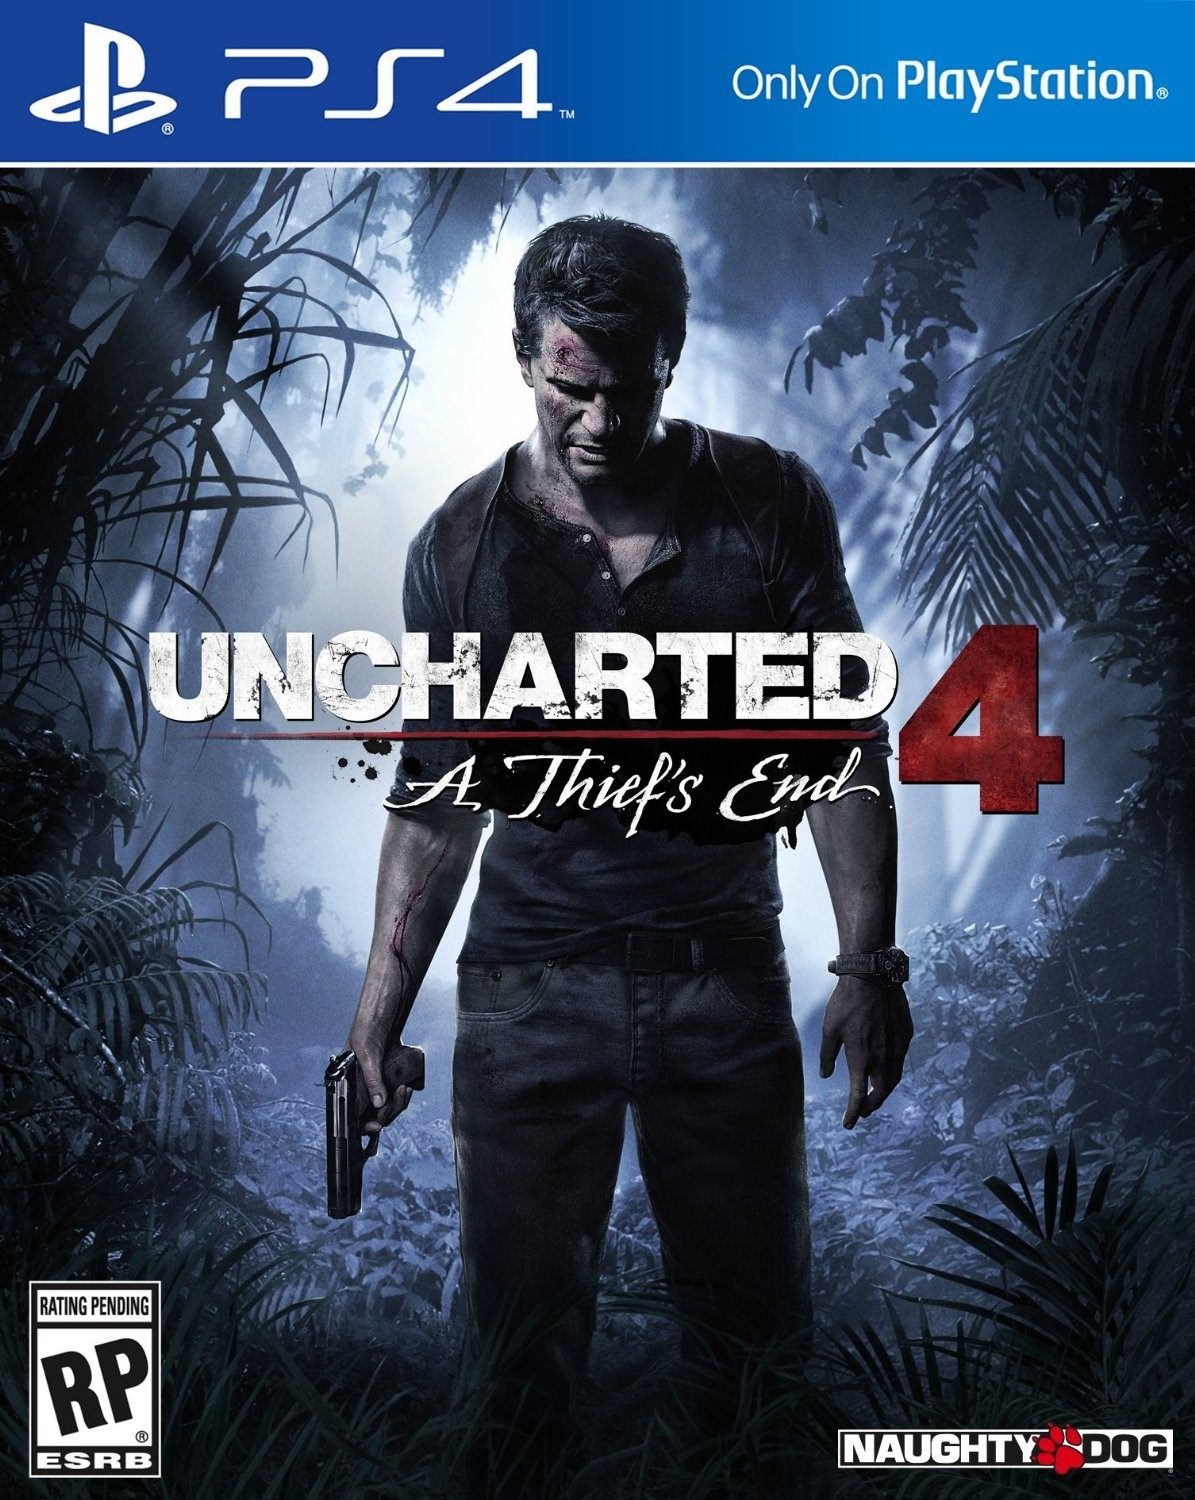 UNCHARTED+Last of Us+STAR WARS (PS4) EU|RUS